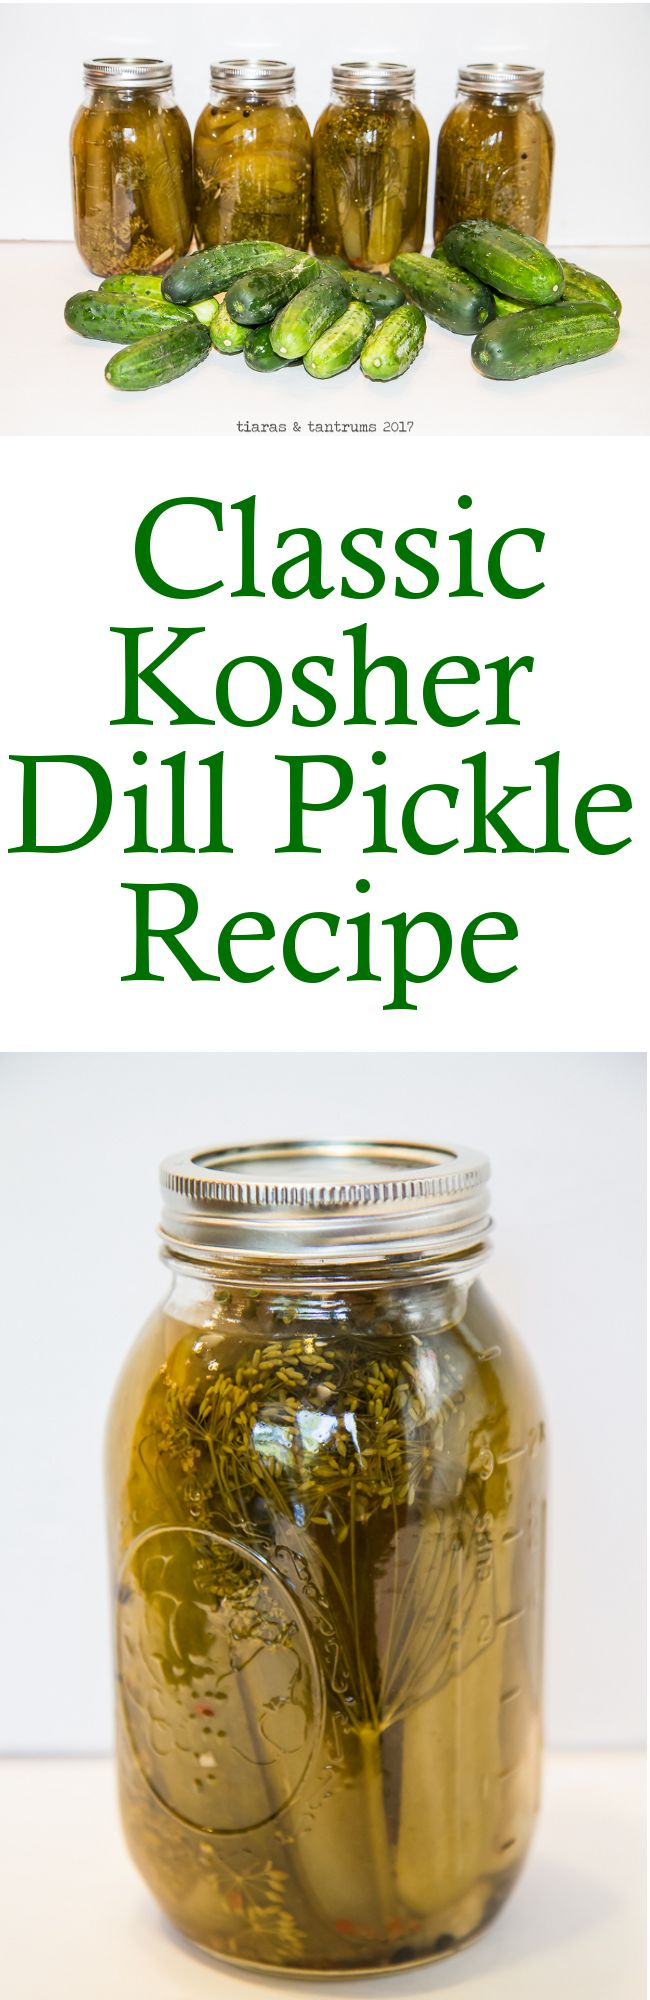 Classic Kosher Dill Pickle Recipe #DillPickles #Canning #recipe| https://www.tiarastantrums.com/blog/the-ultimate-classic-kosher-dill-pickle-recipe.html